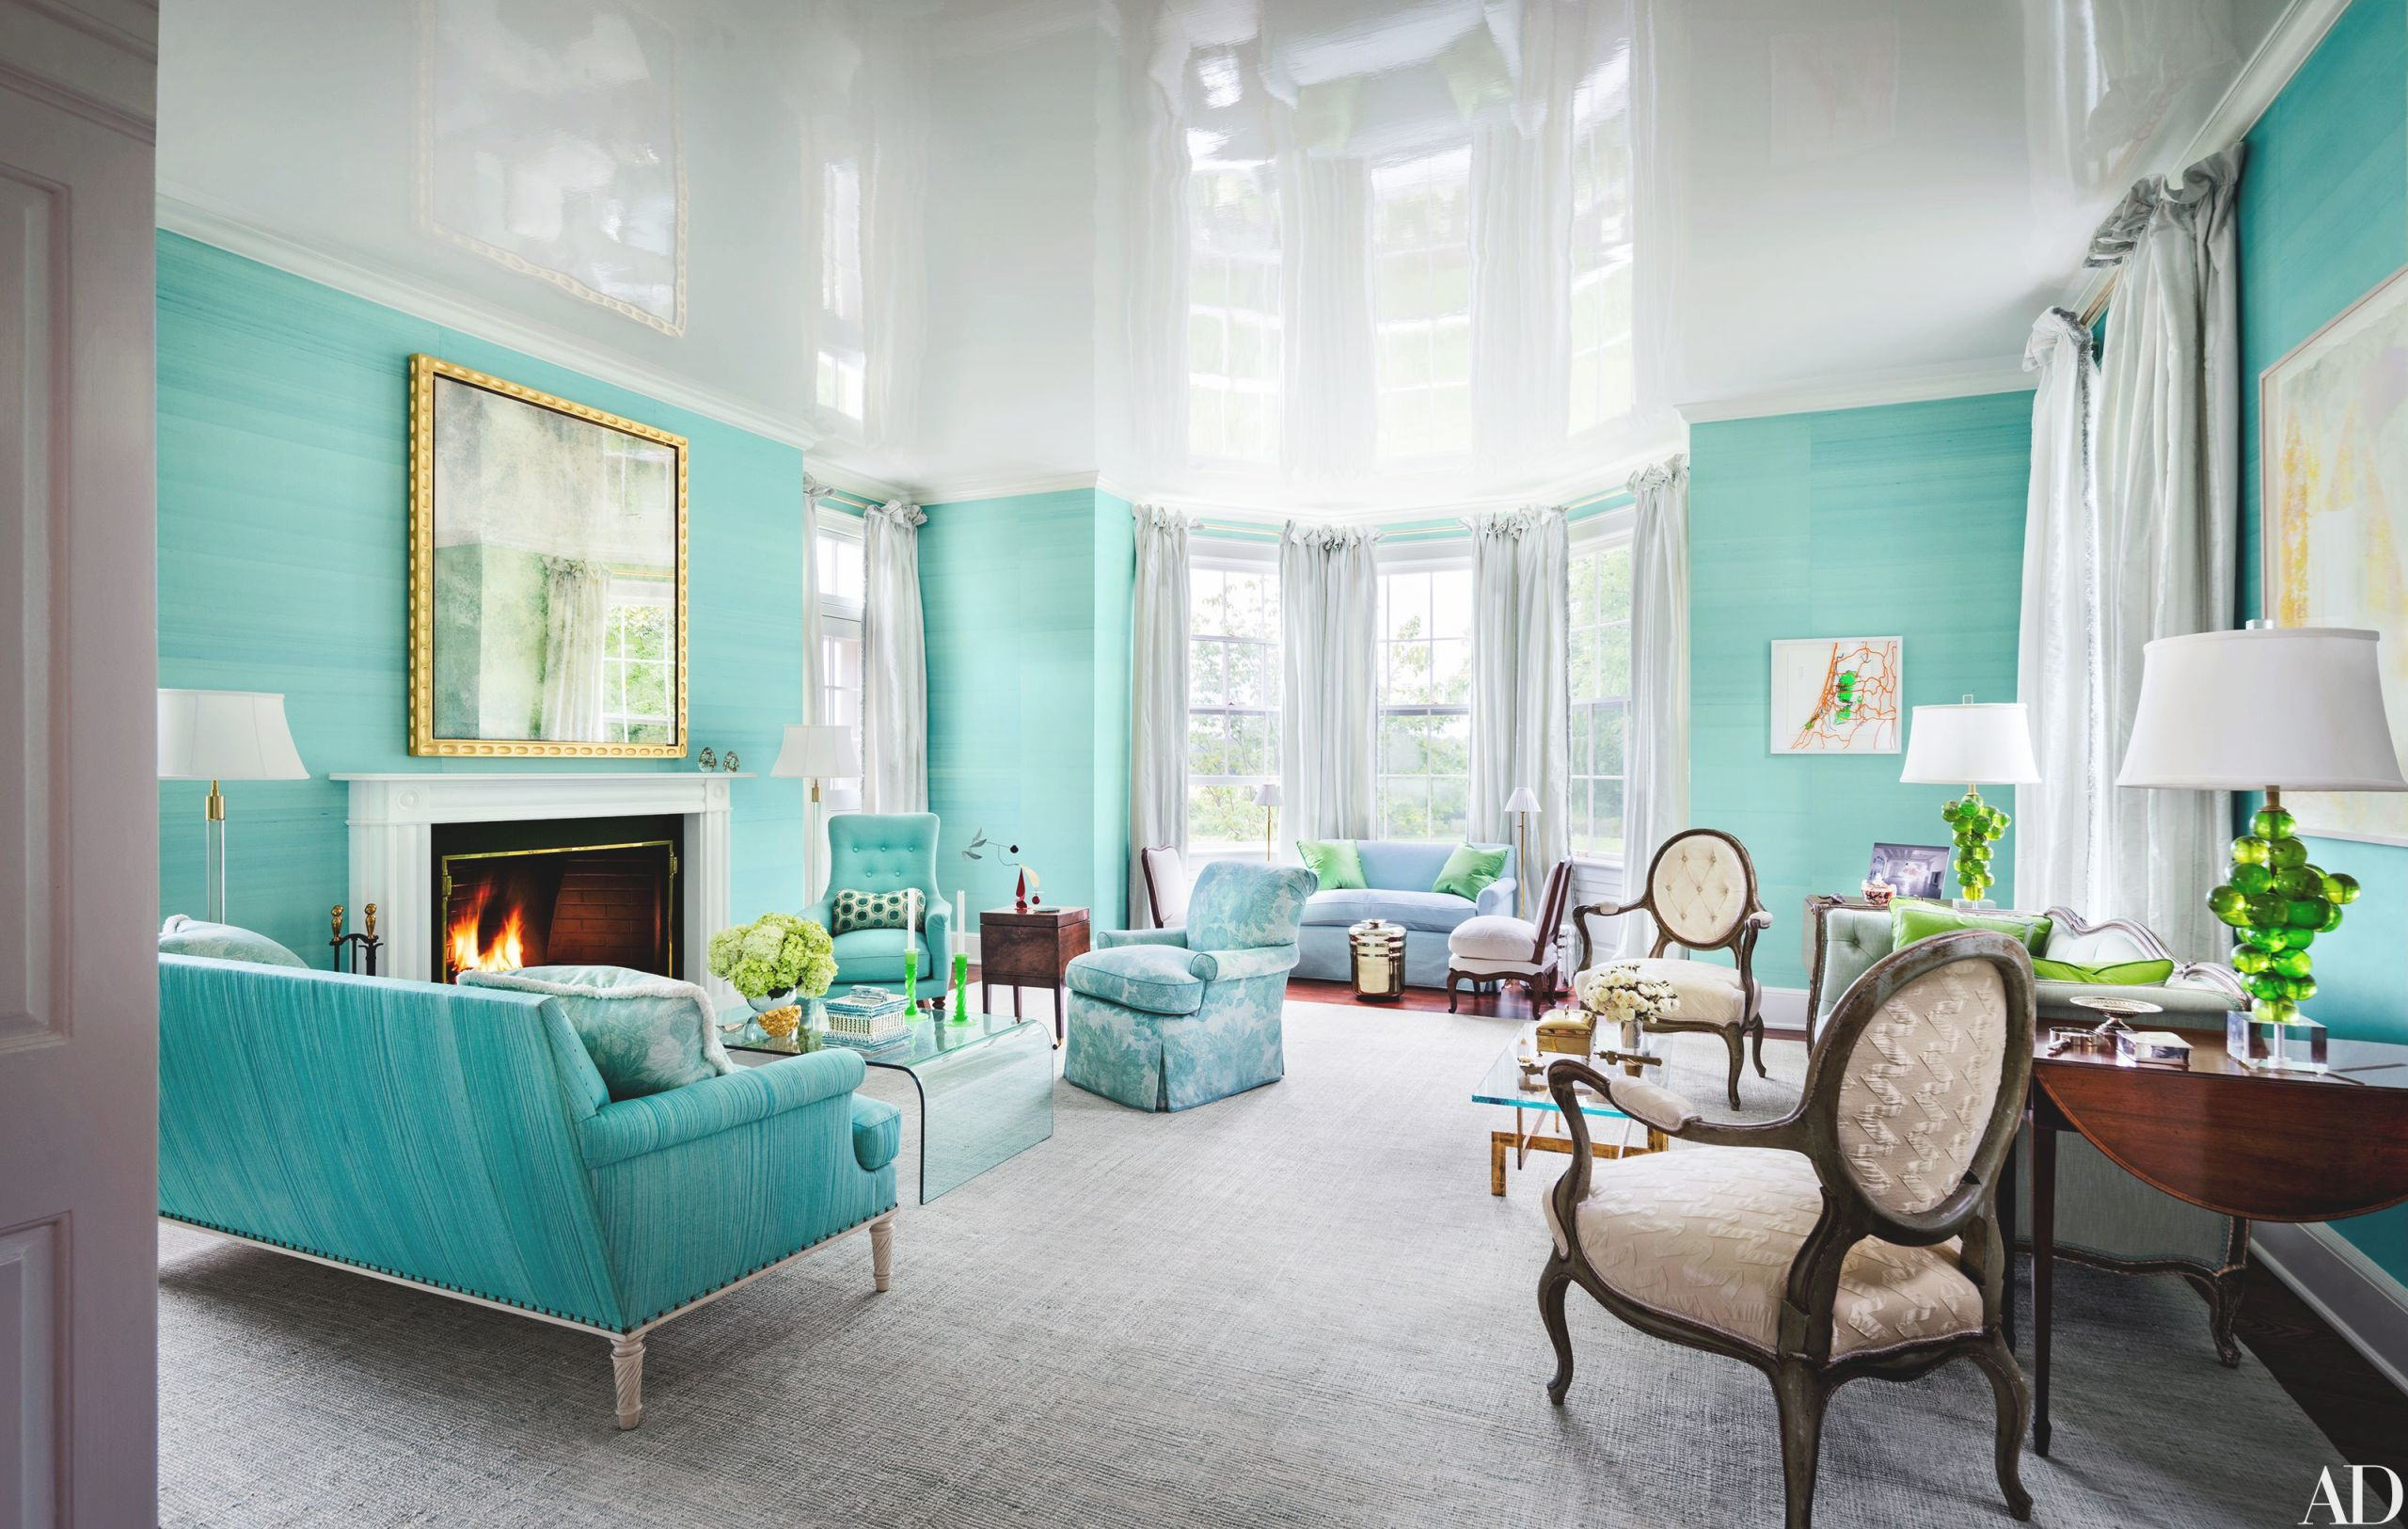 33 Spaces For Jewel-Tone Paint Color Inspiration with regard to Elegant Turquoise Living Room Furniture